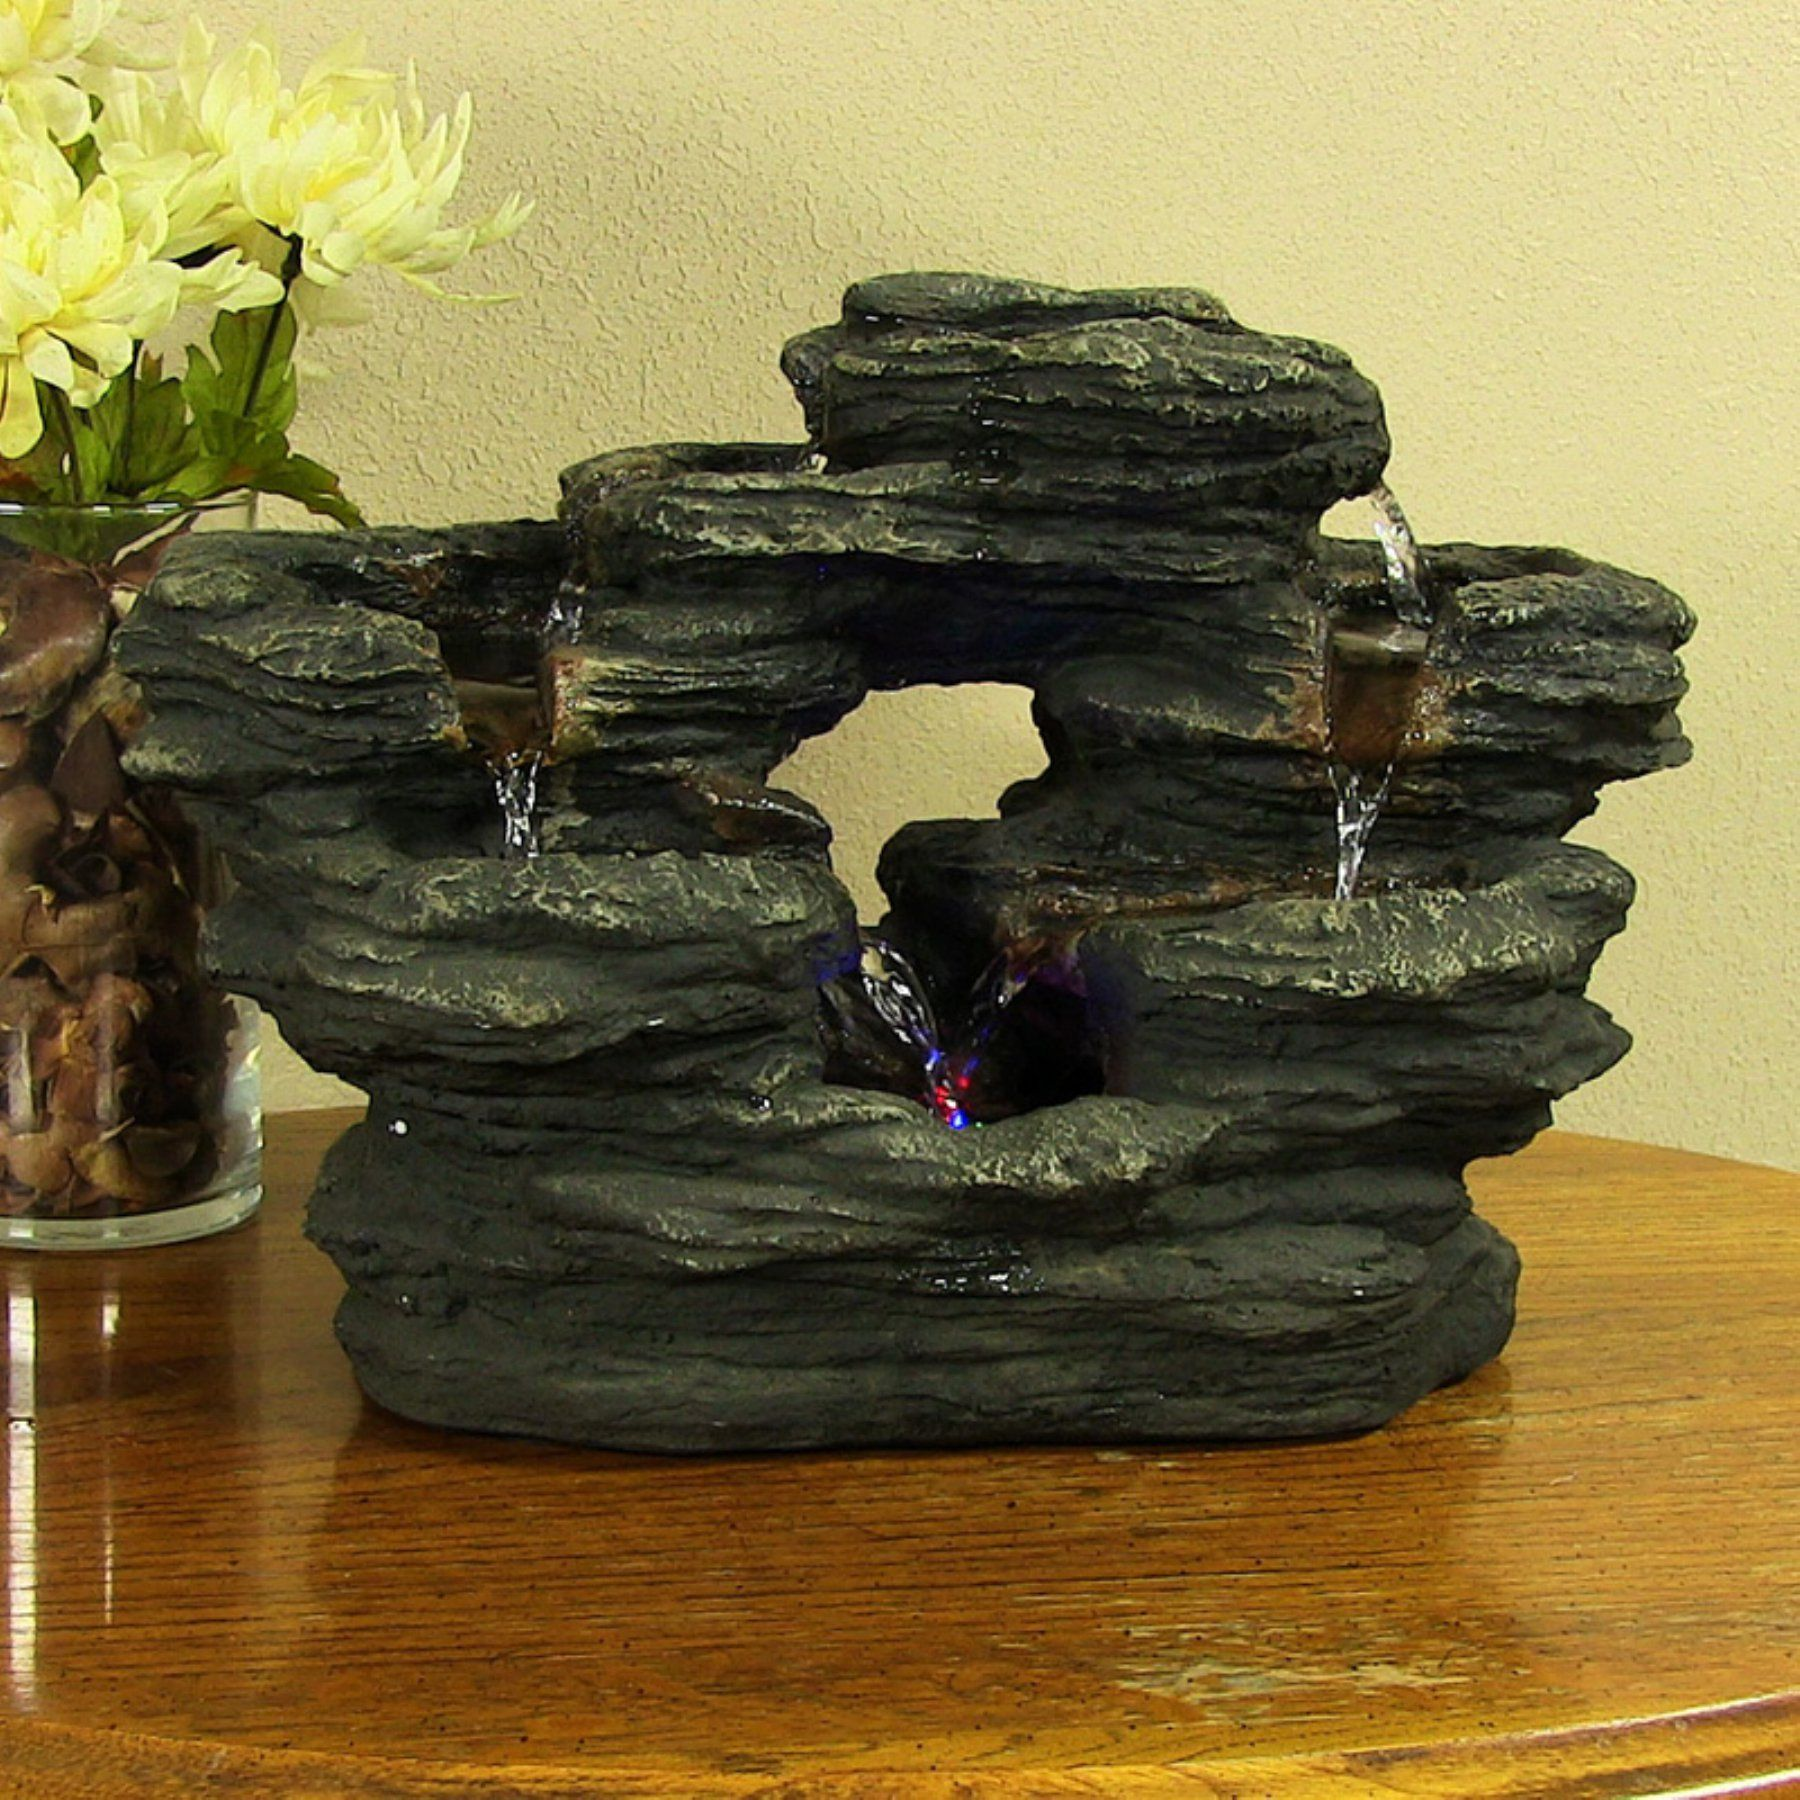 Sunnydaze Decor Two Stream Rock Tabletop Fountain with LED Light - DW-158102 ed4526ccc